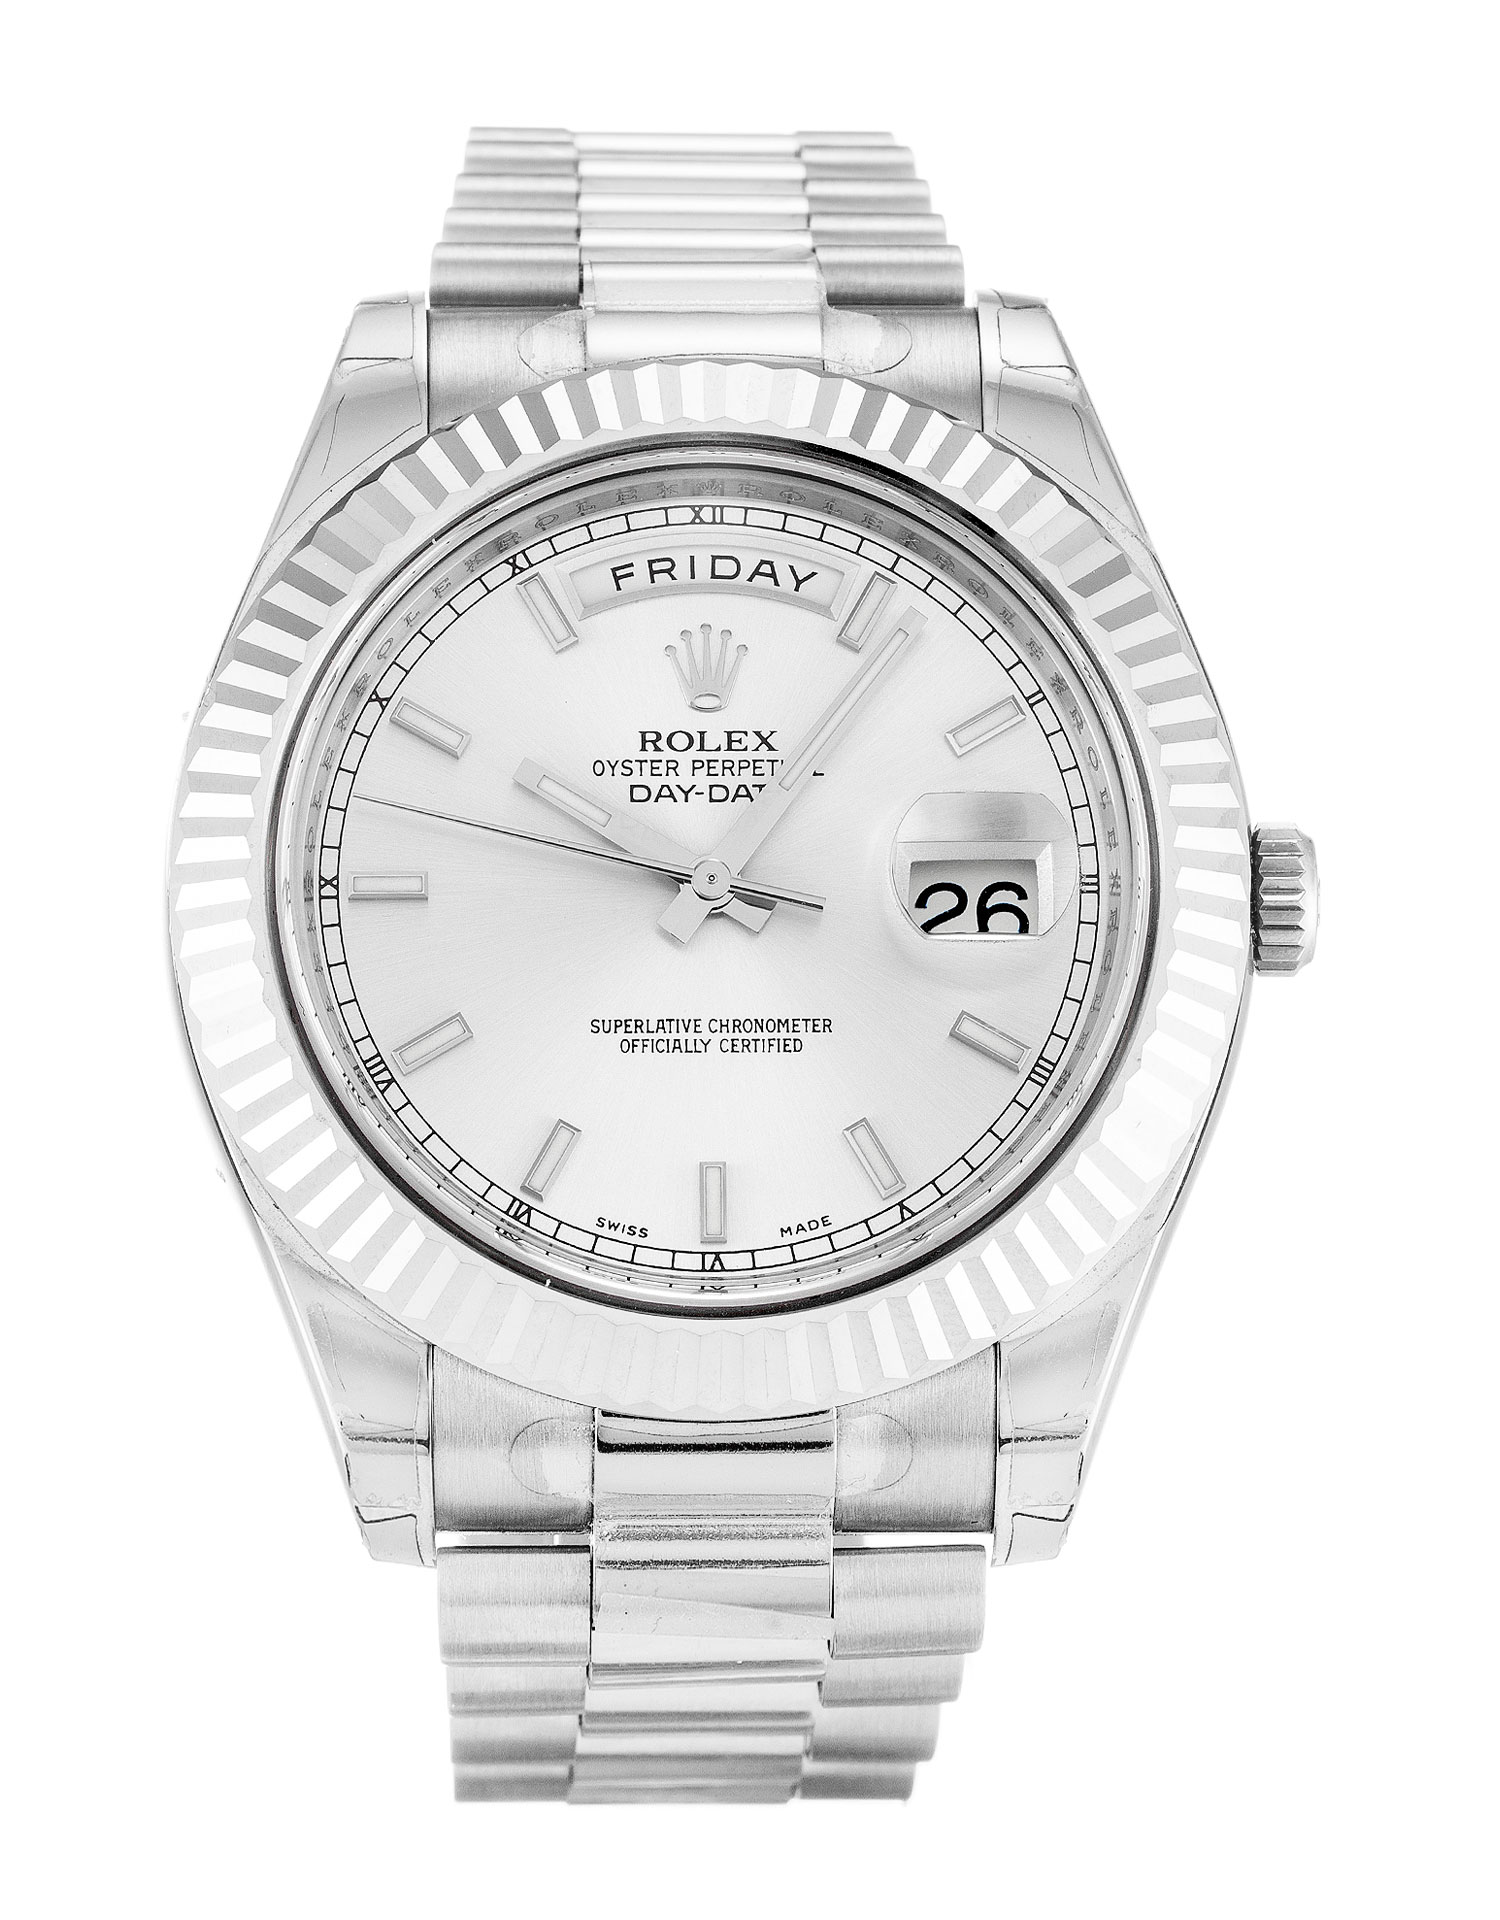 Rolex Day-date Ii 218239 Mens 41 Mm White Gold Case Automatic Movement – iapac.to